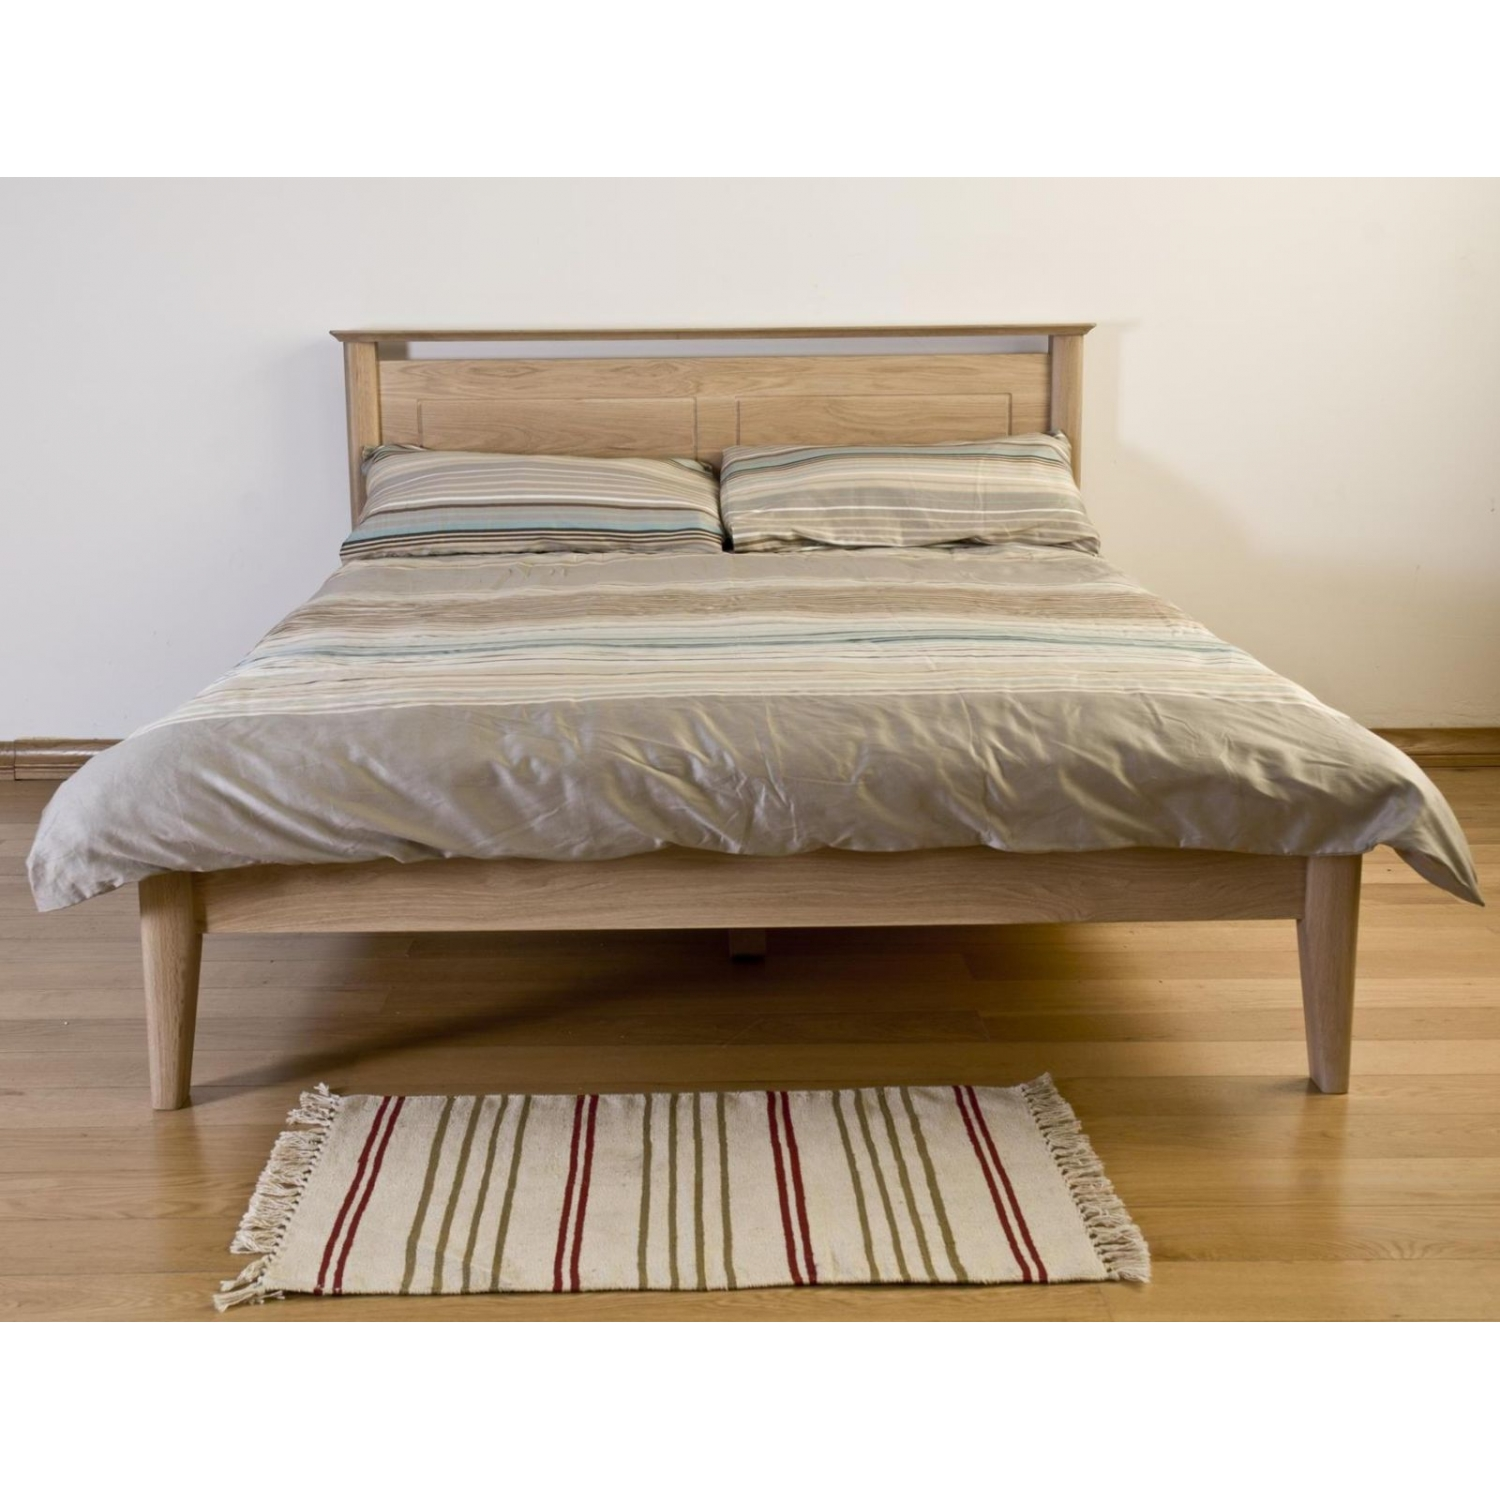 Kemble Solid Oak Furniture 5 King Size Bed